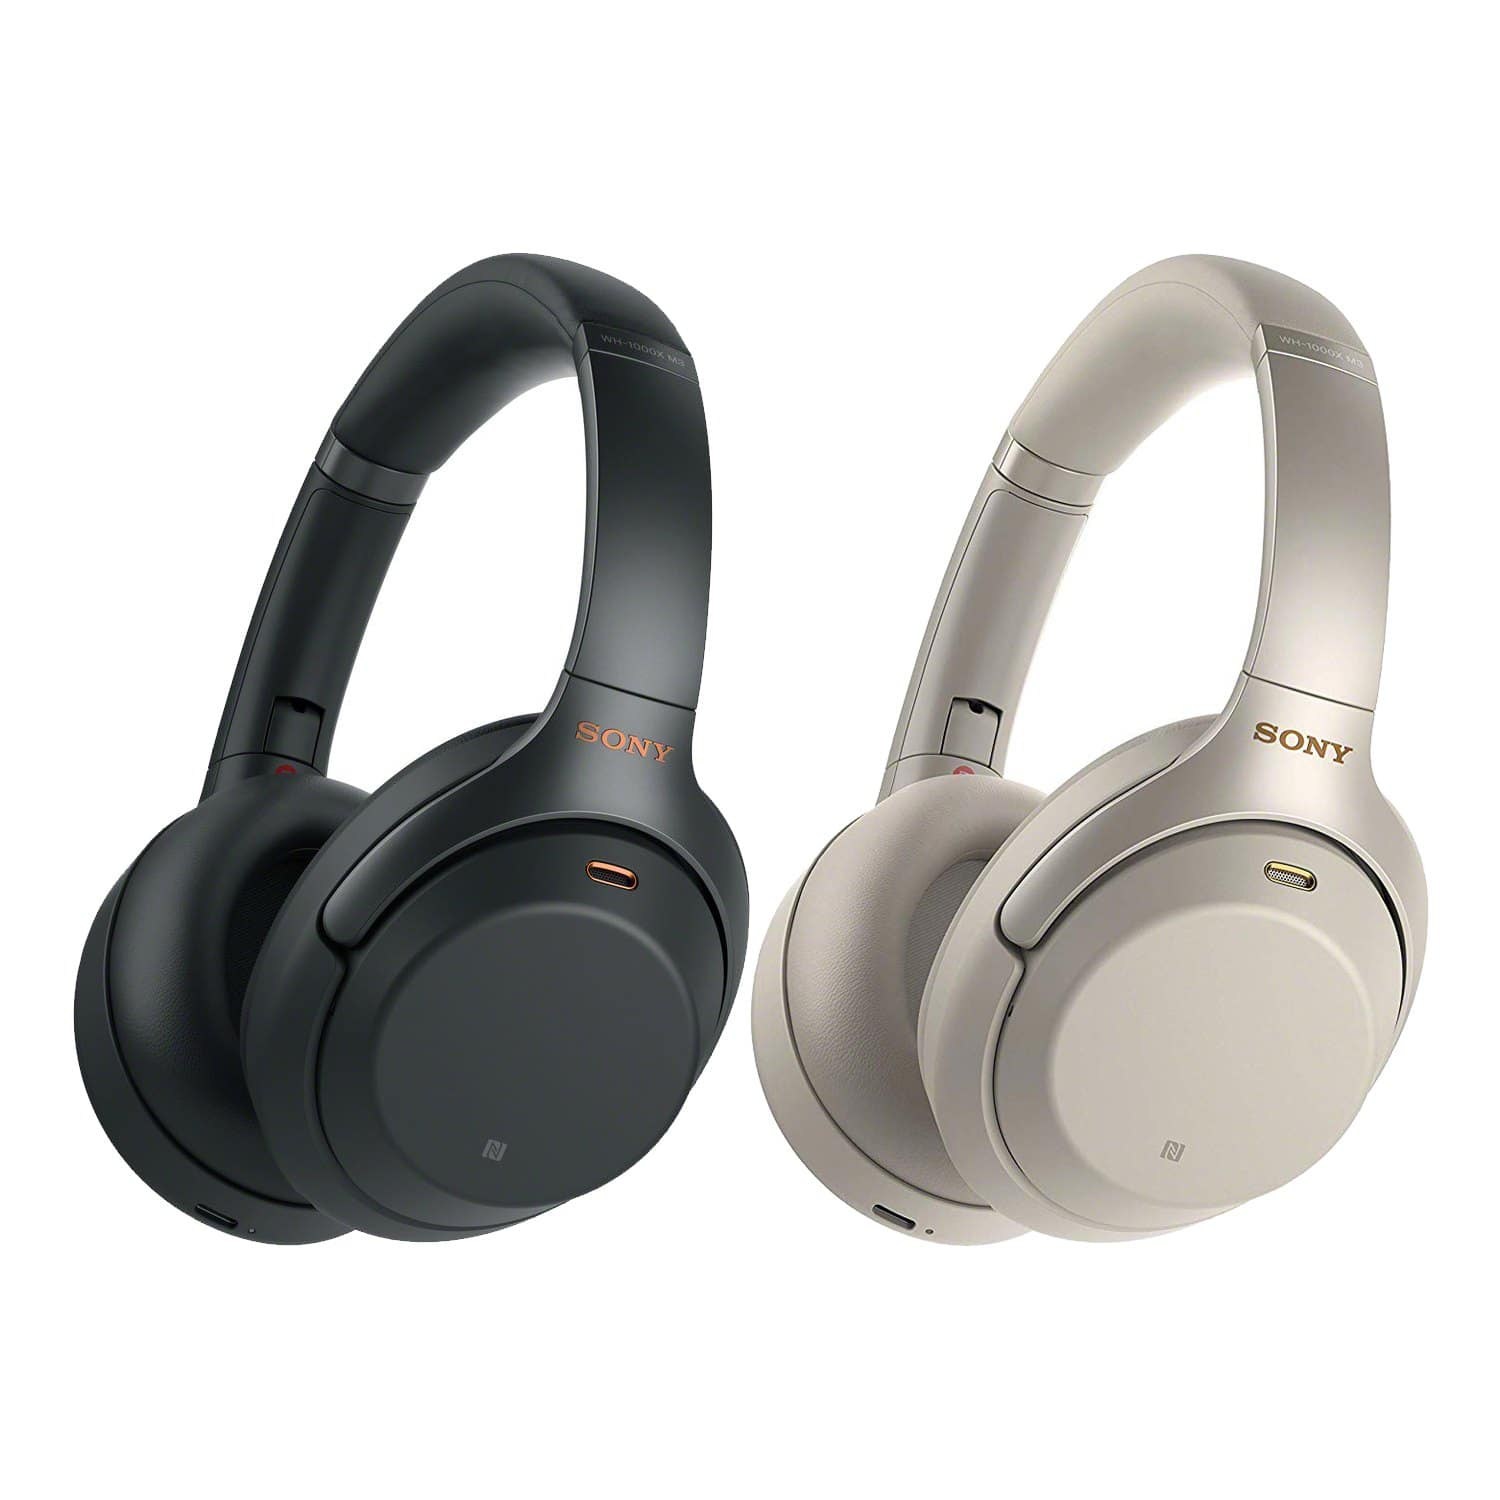 Sony WH1000XM3 Bluetooth Wireless Noise Canceling Headphones